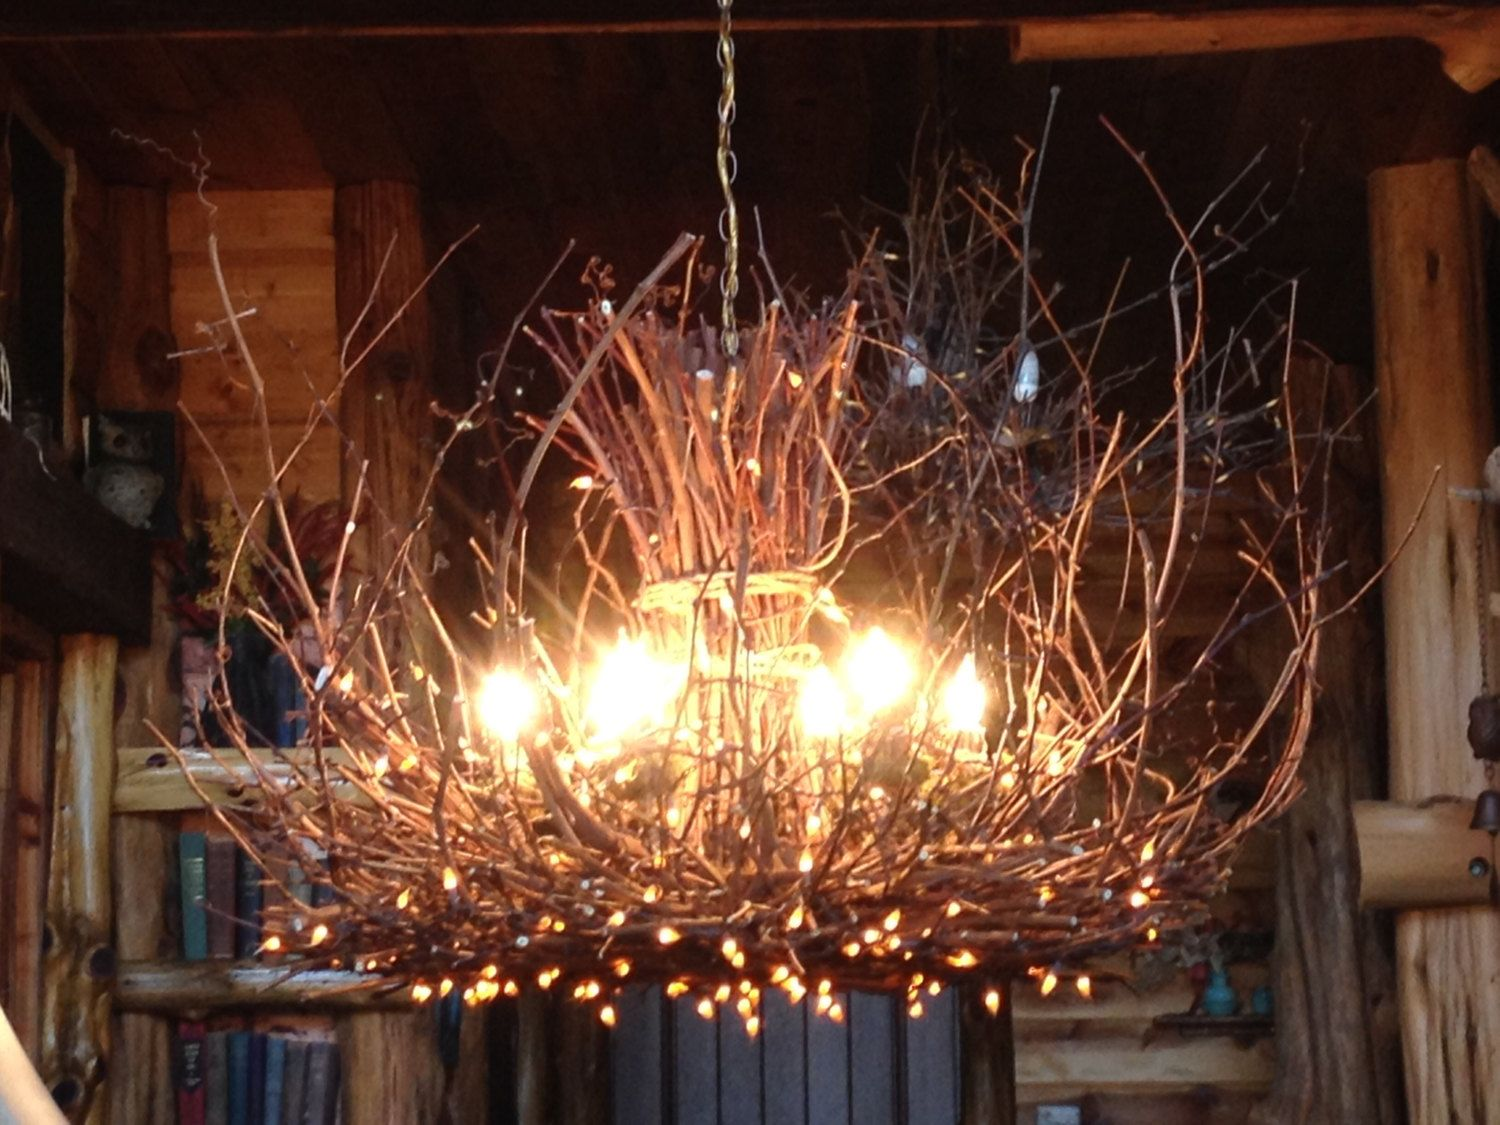 Cold mountain rustic chandelier lighting 6 light twig cold mountain rustic chandelier lighting 6 light twig chandelier rustic light fixture 300 fairy lights rustic cabin decor 42x28 arubaitofo Image collections